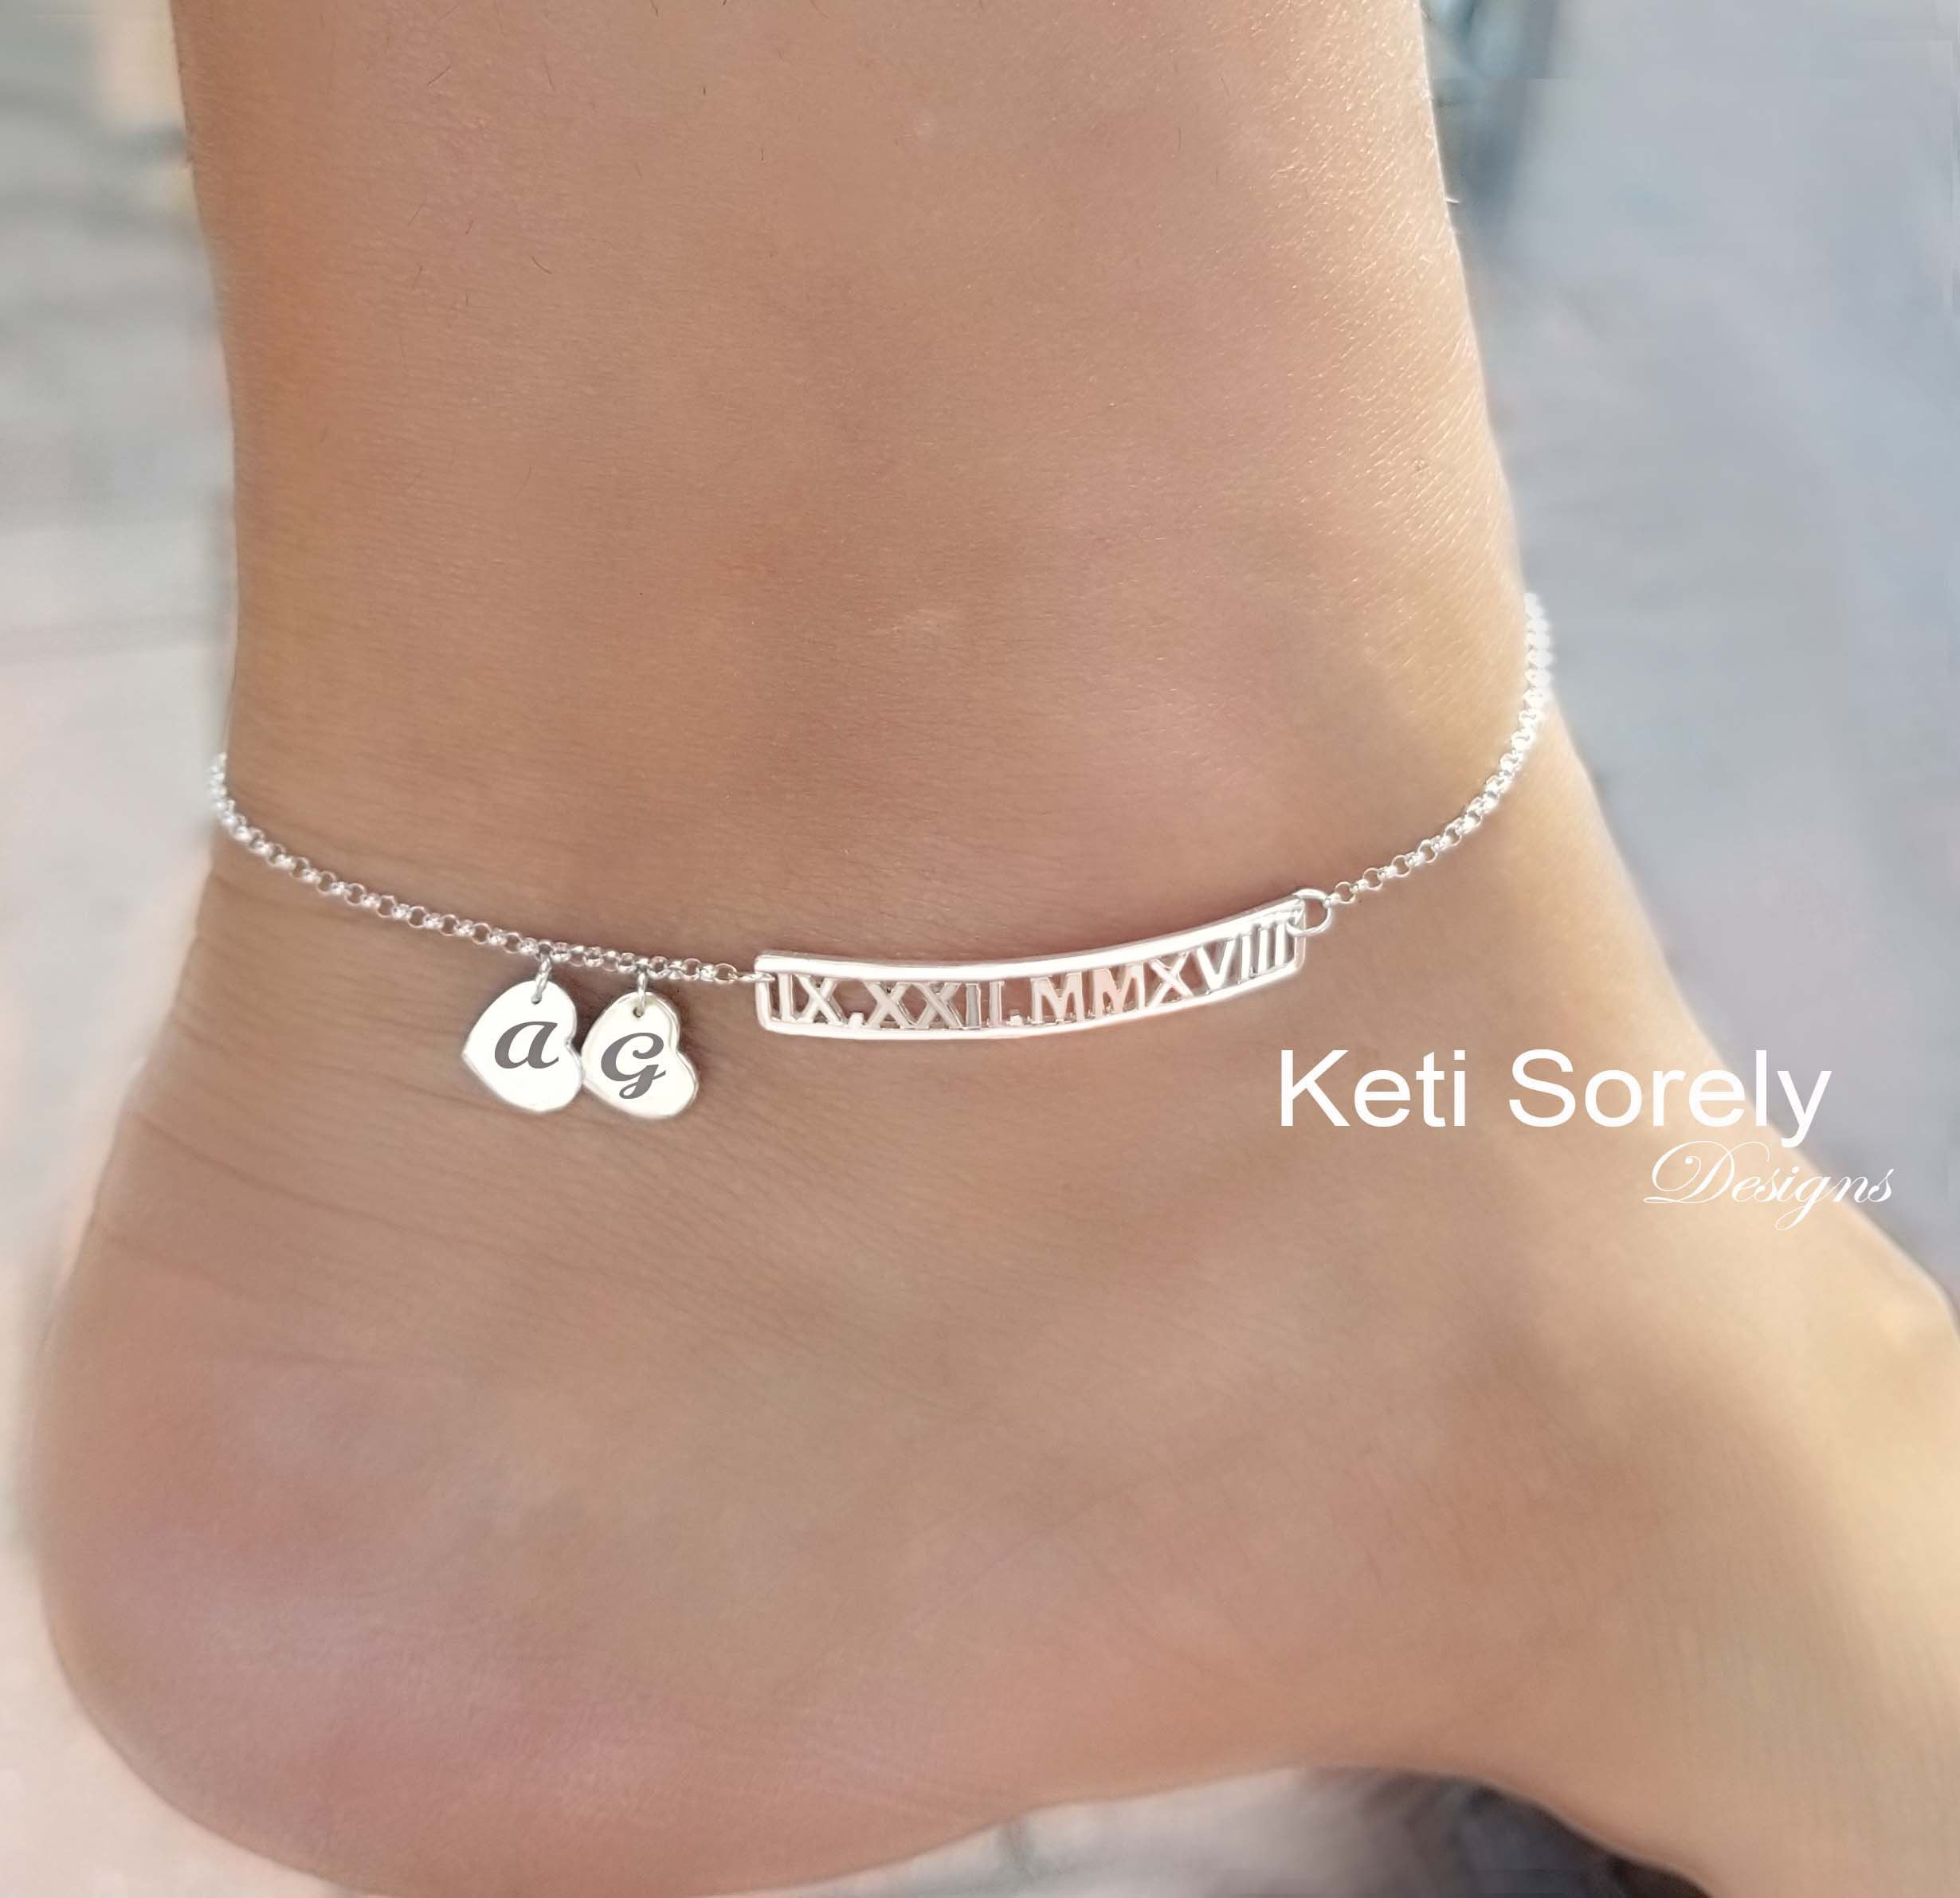 Personalized Roman Numerals Anklet With Engraved Initials Etsy In 2020 Anklet Designs Anklet Anklets